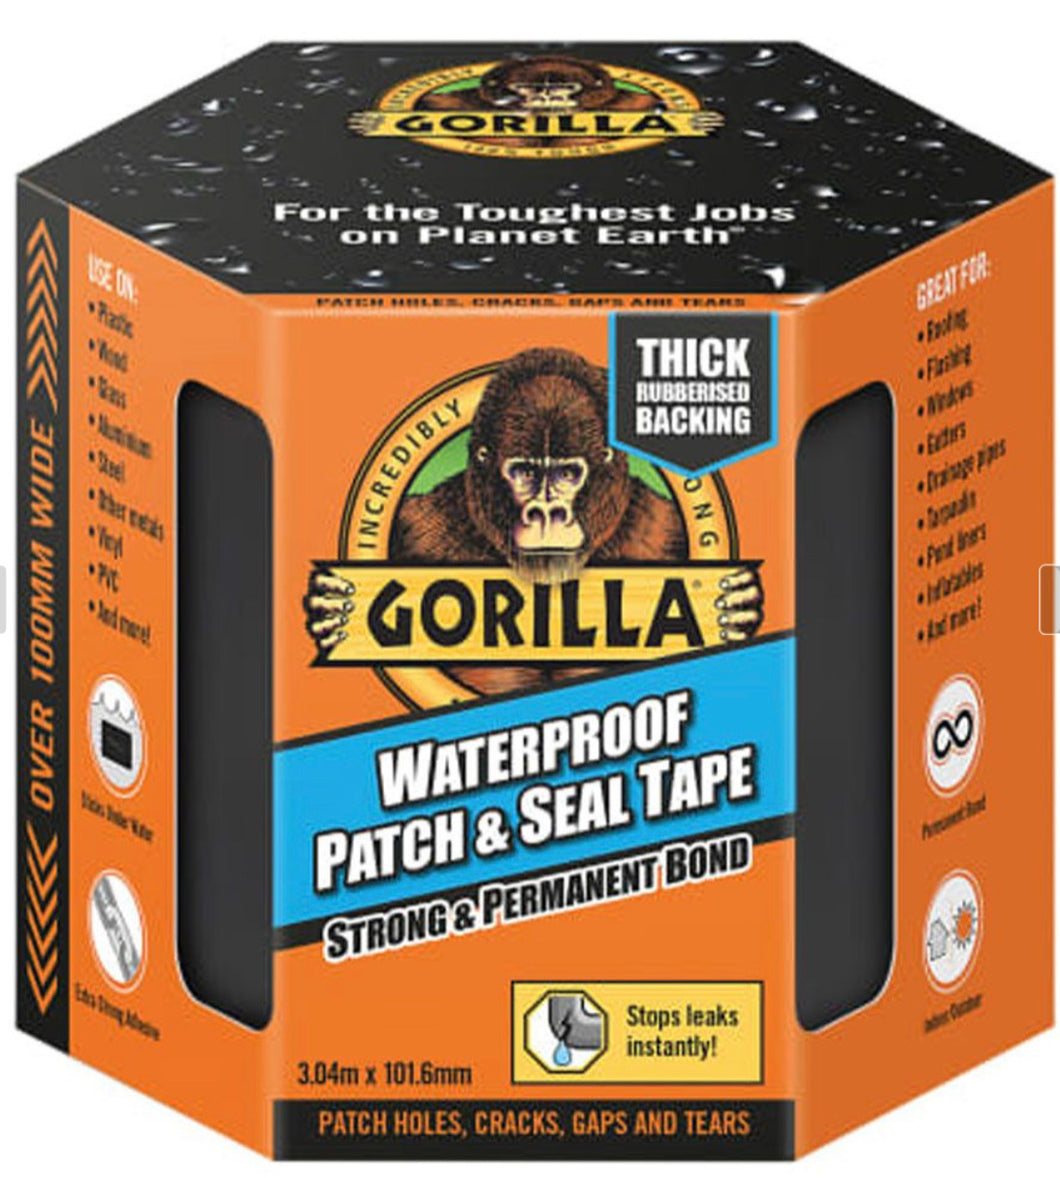 Gorilla waterproof patch and seal tape 3m x 100mm